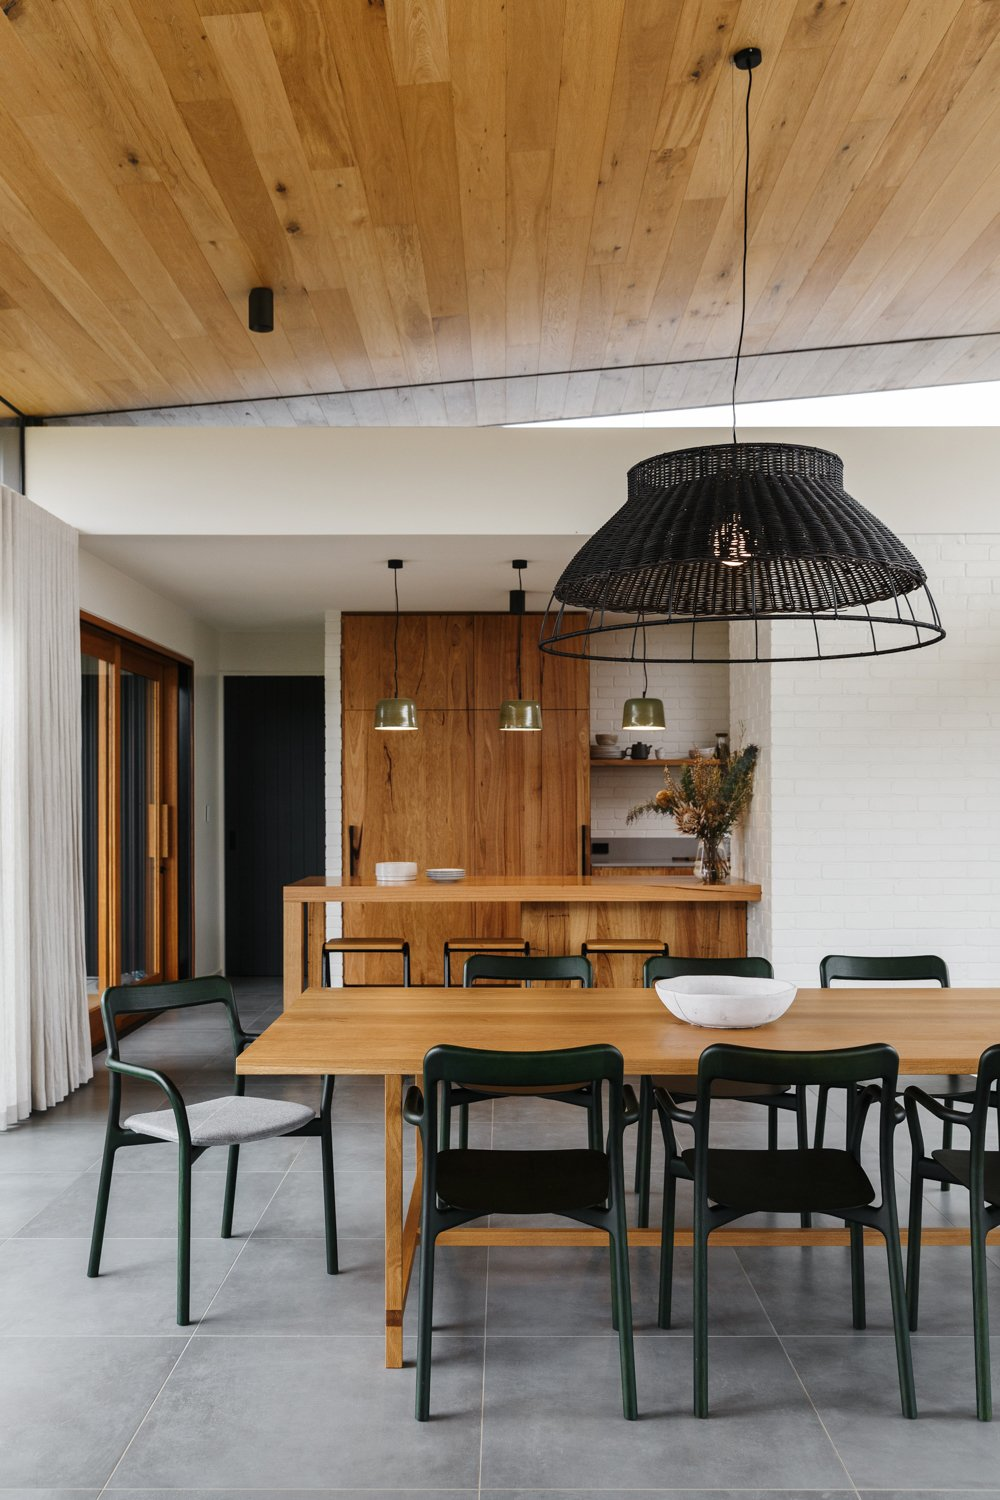 Dining Room, Pendant Lighting, Chair, and Table  Photo 4 of 11 in The Surrounding Countryside Inspires a Family Home in Australia's Adelaide Hills